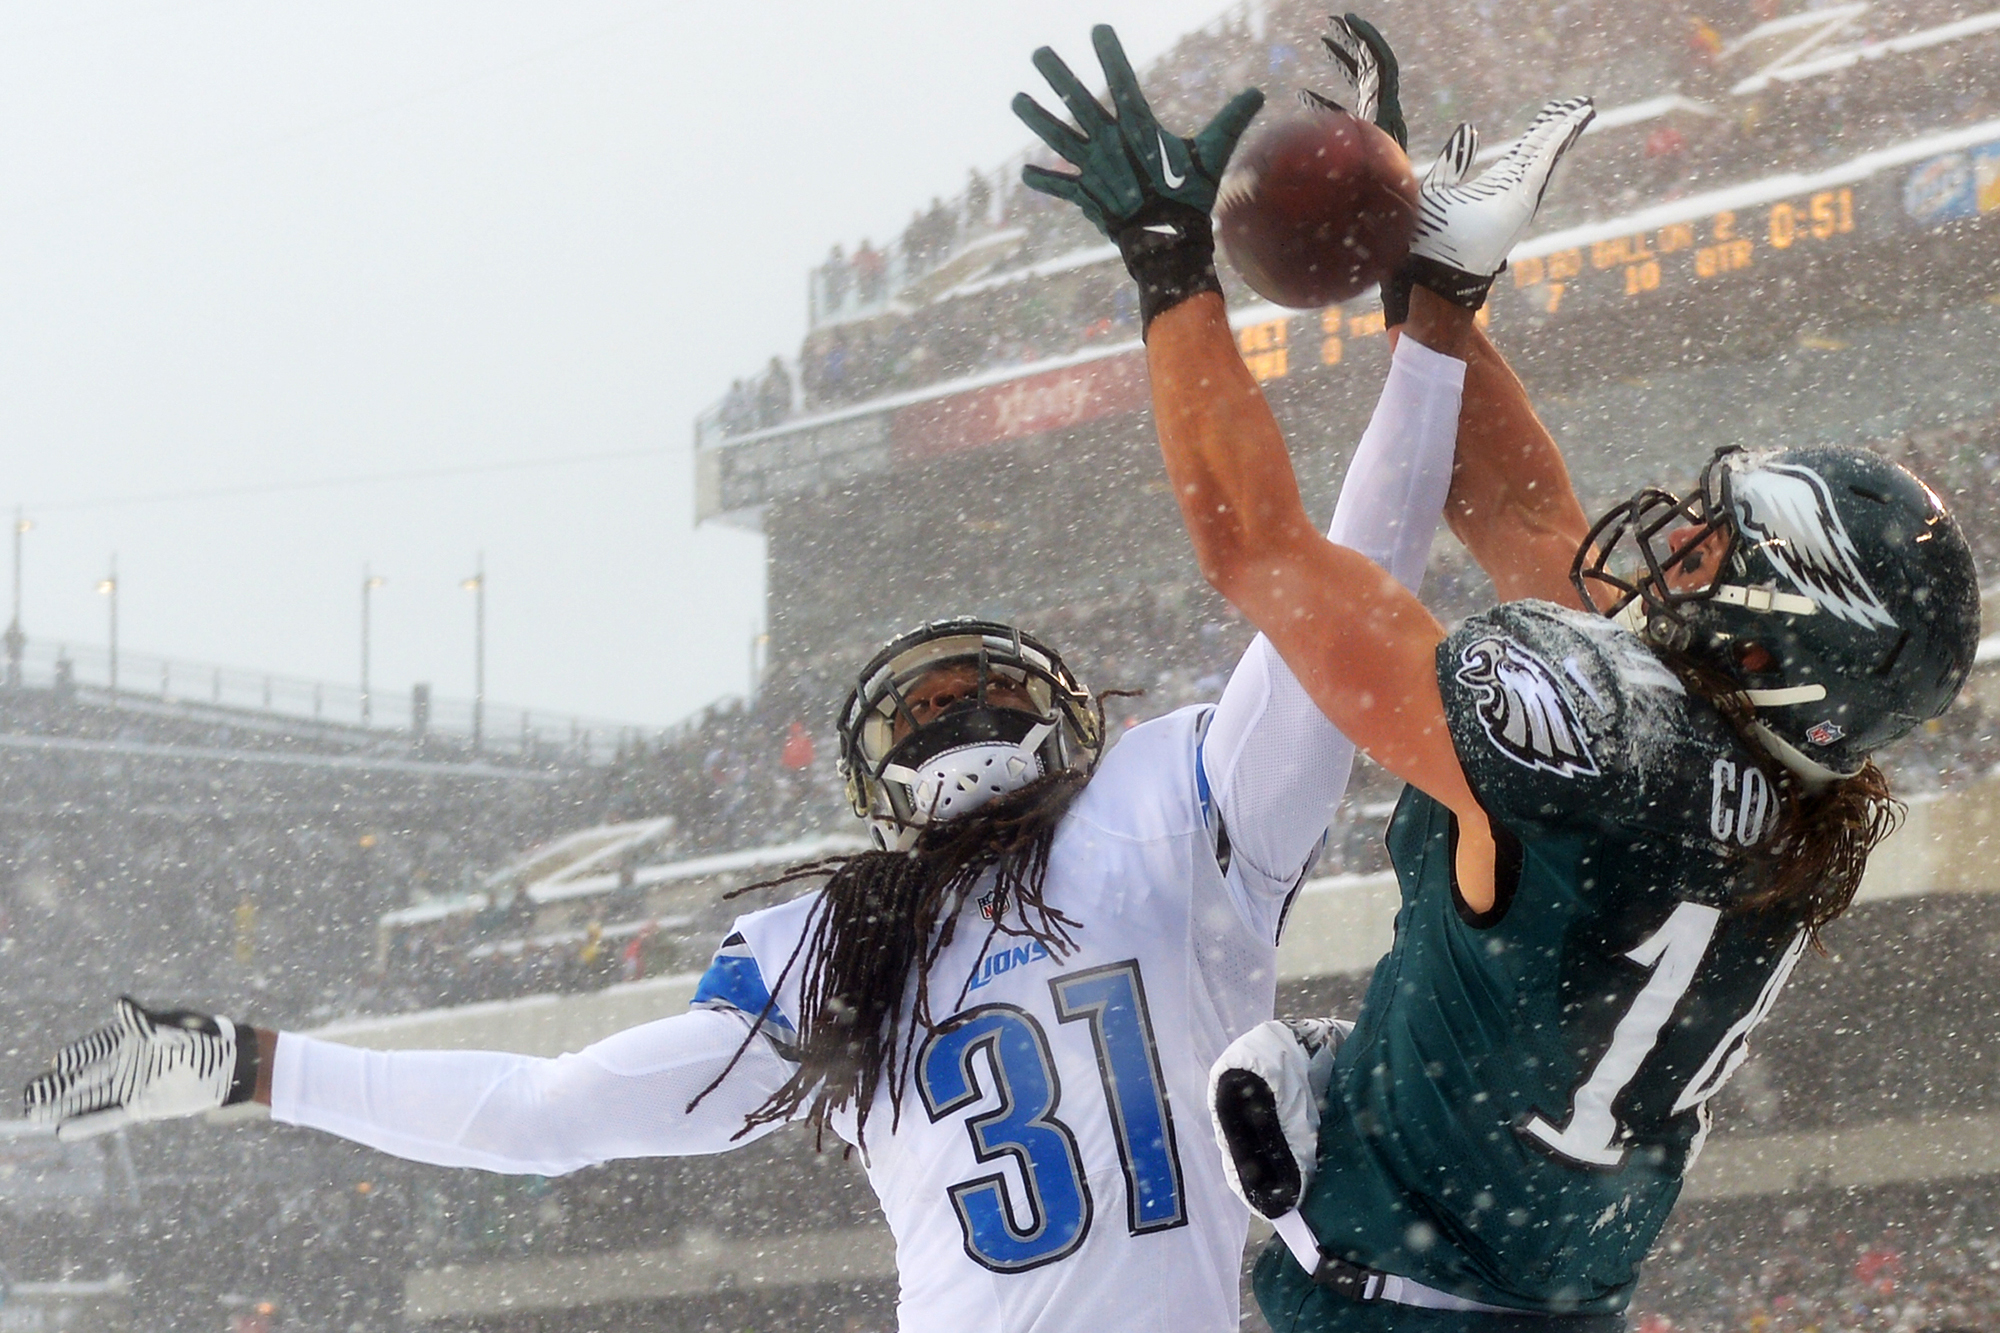 Rashean Mathis #31 of the Detroit Lions breaks up a pass intended for Riley Cooper #14 of the Philadelphia Eagles at Lincoln Financial Field on December 8, 2013 in Philadelphia, Pennsylvania.